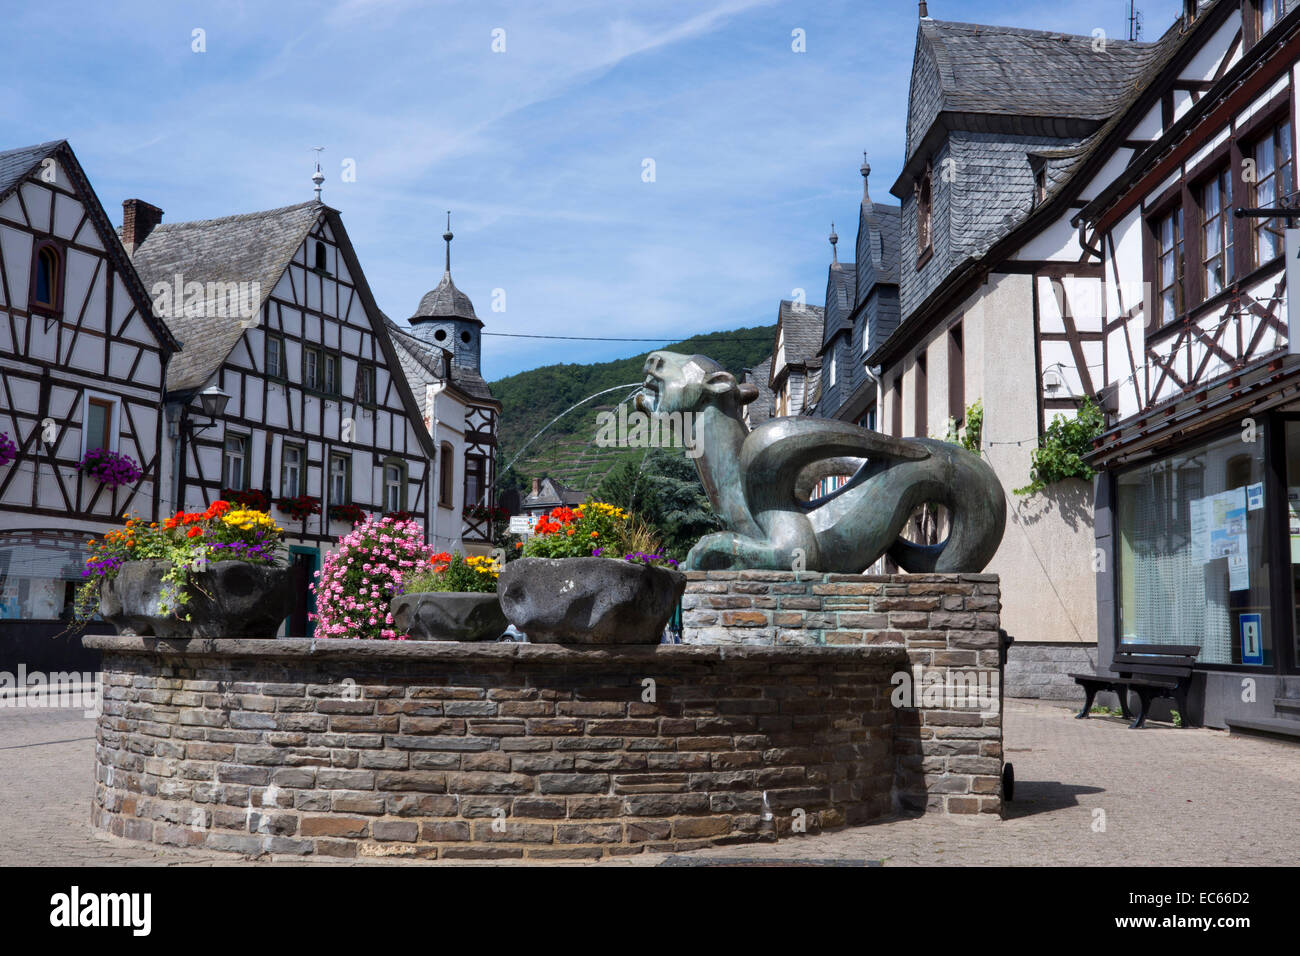 Tatzelwurm wine fountain in Kobern, Kobern Gondorf, Moselle, district Mayen Koblenz, Rhineland Palatinate, Germany, - Stock Image